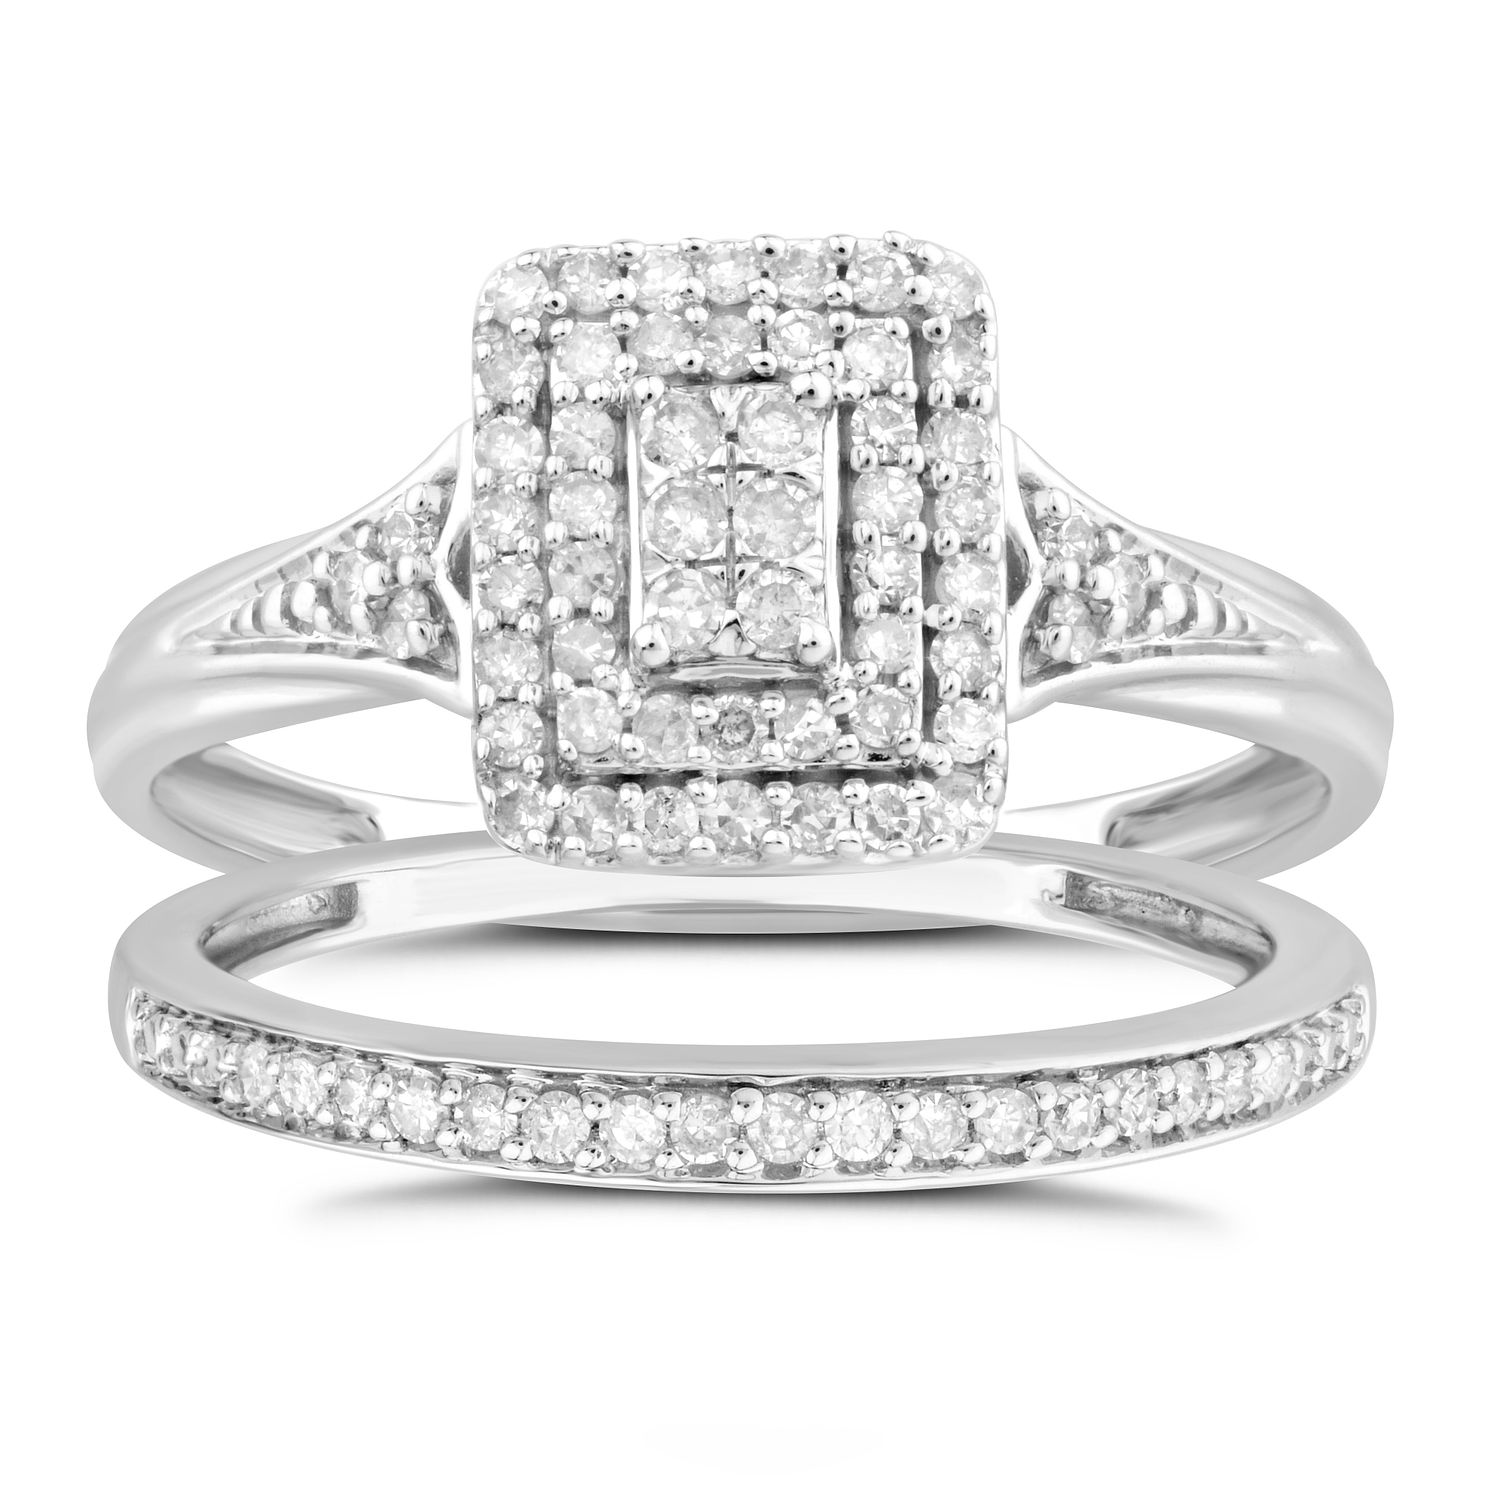 Perfect Fit 9ct White Gold 1/3ct Diamond Cushion Bridal Set - Product number 4890671